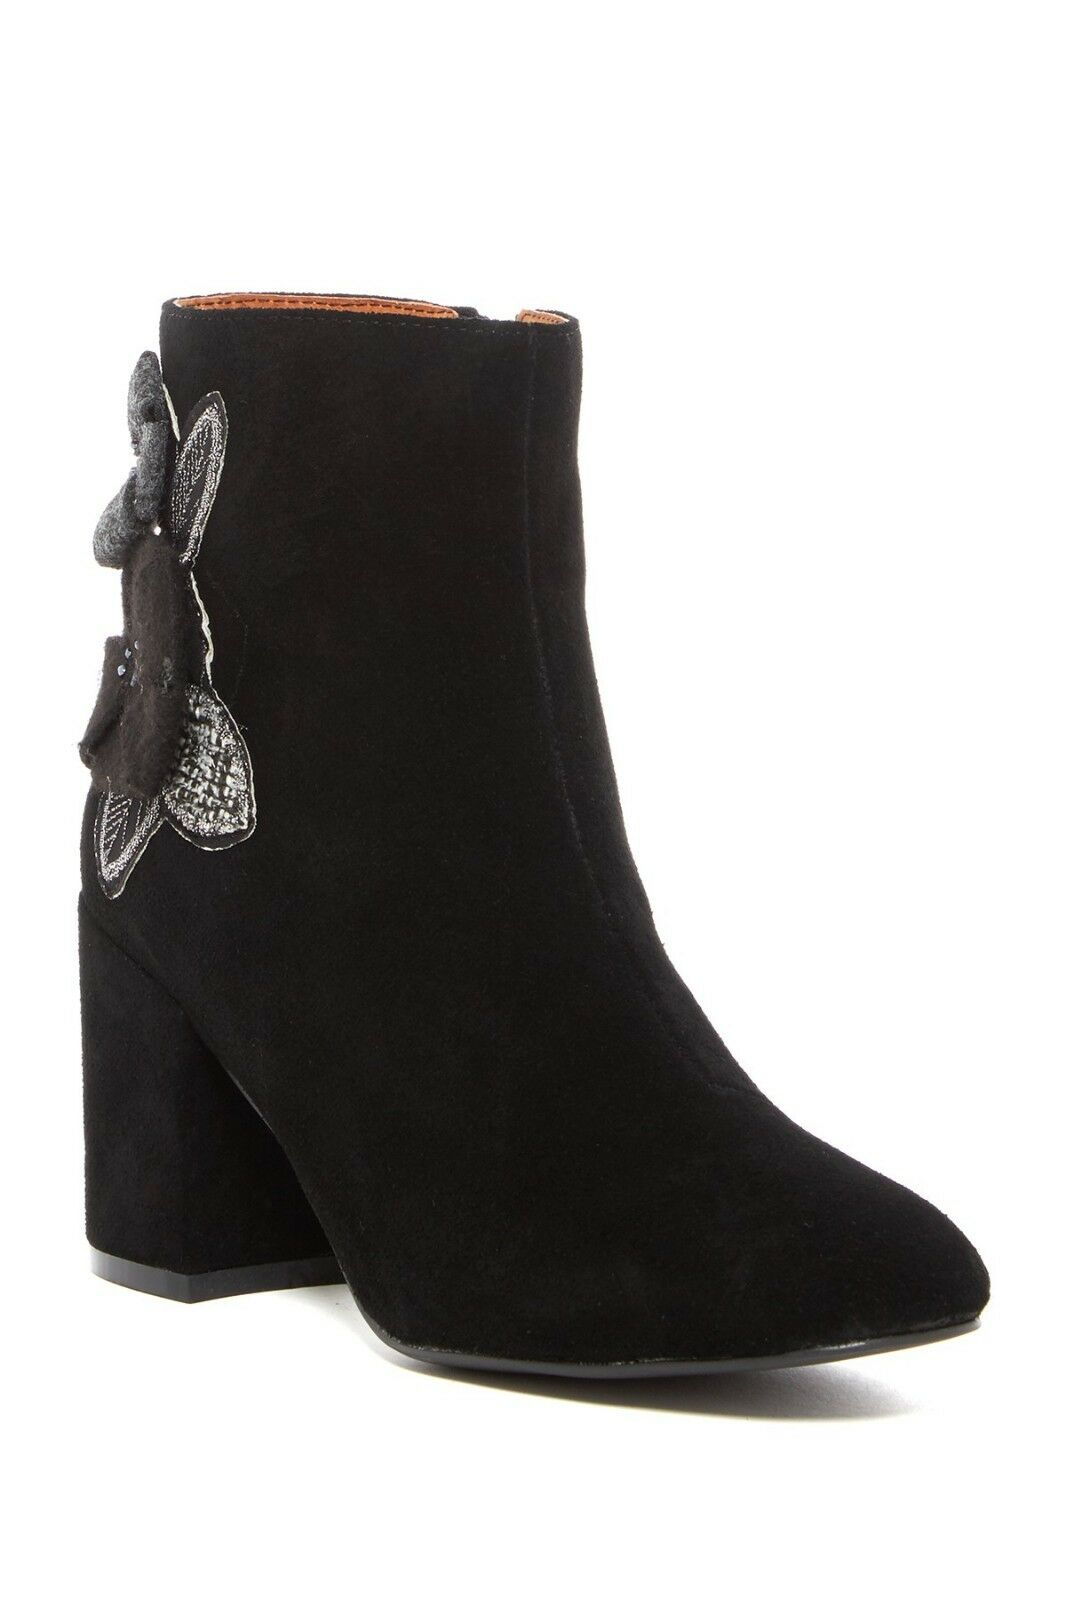 New Floral  Catherine Catherine Malandrino Melky Floral New Bootie  Damens's Stiefel d2a623